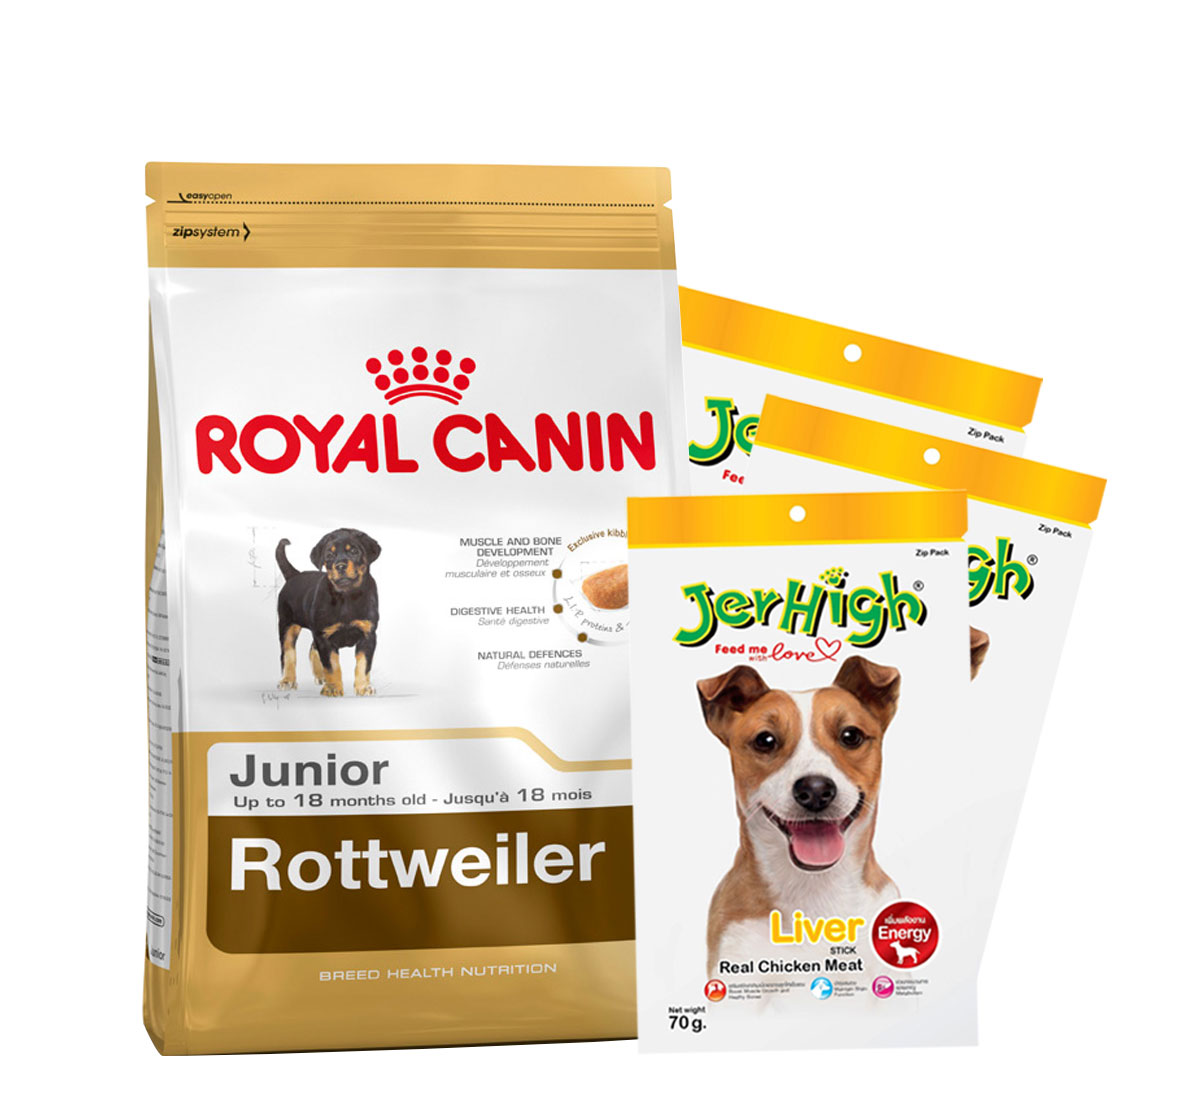 Royal Canin Rottweiler Junior - 12 Kg with Treats